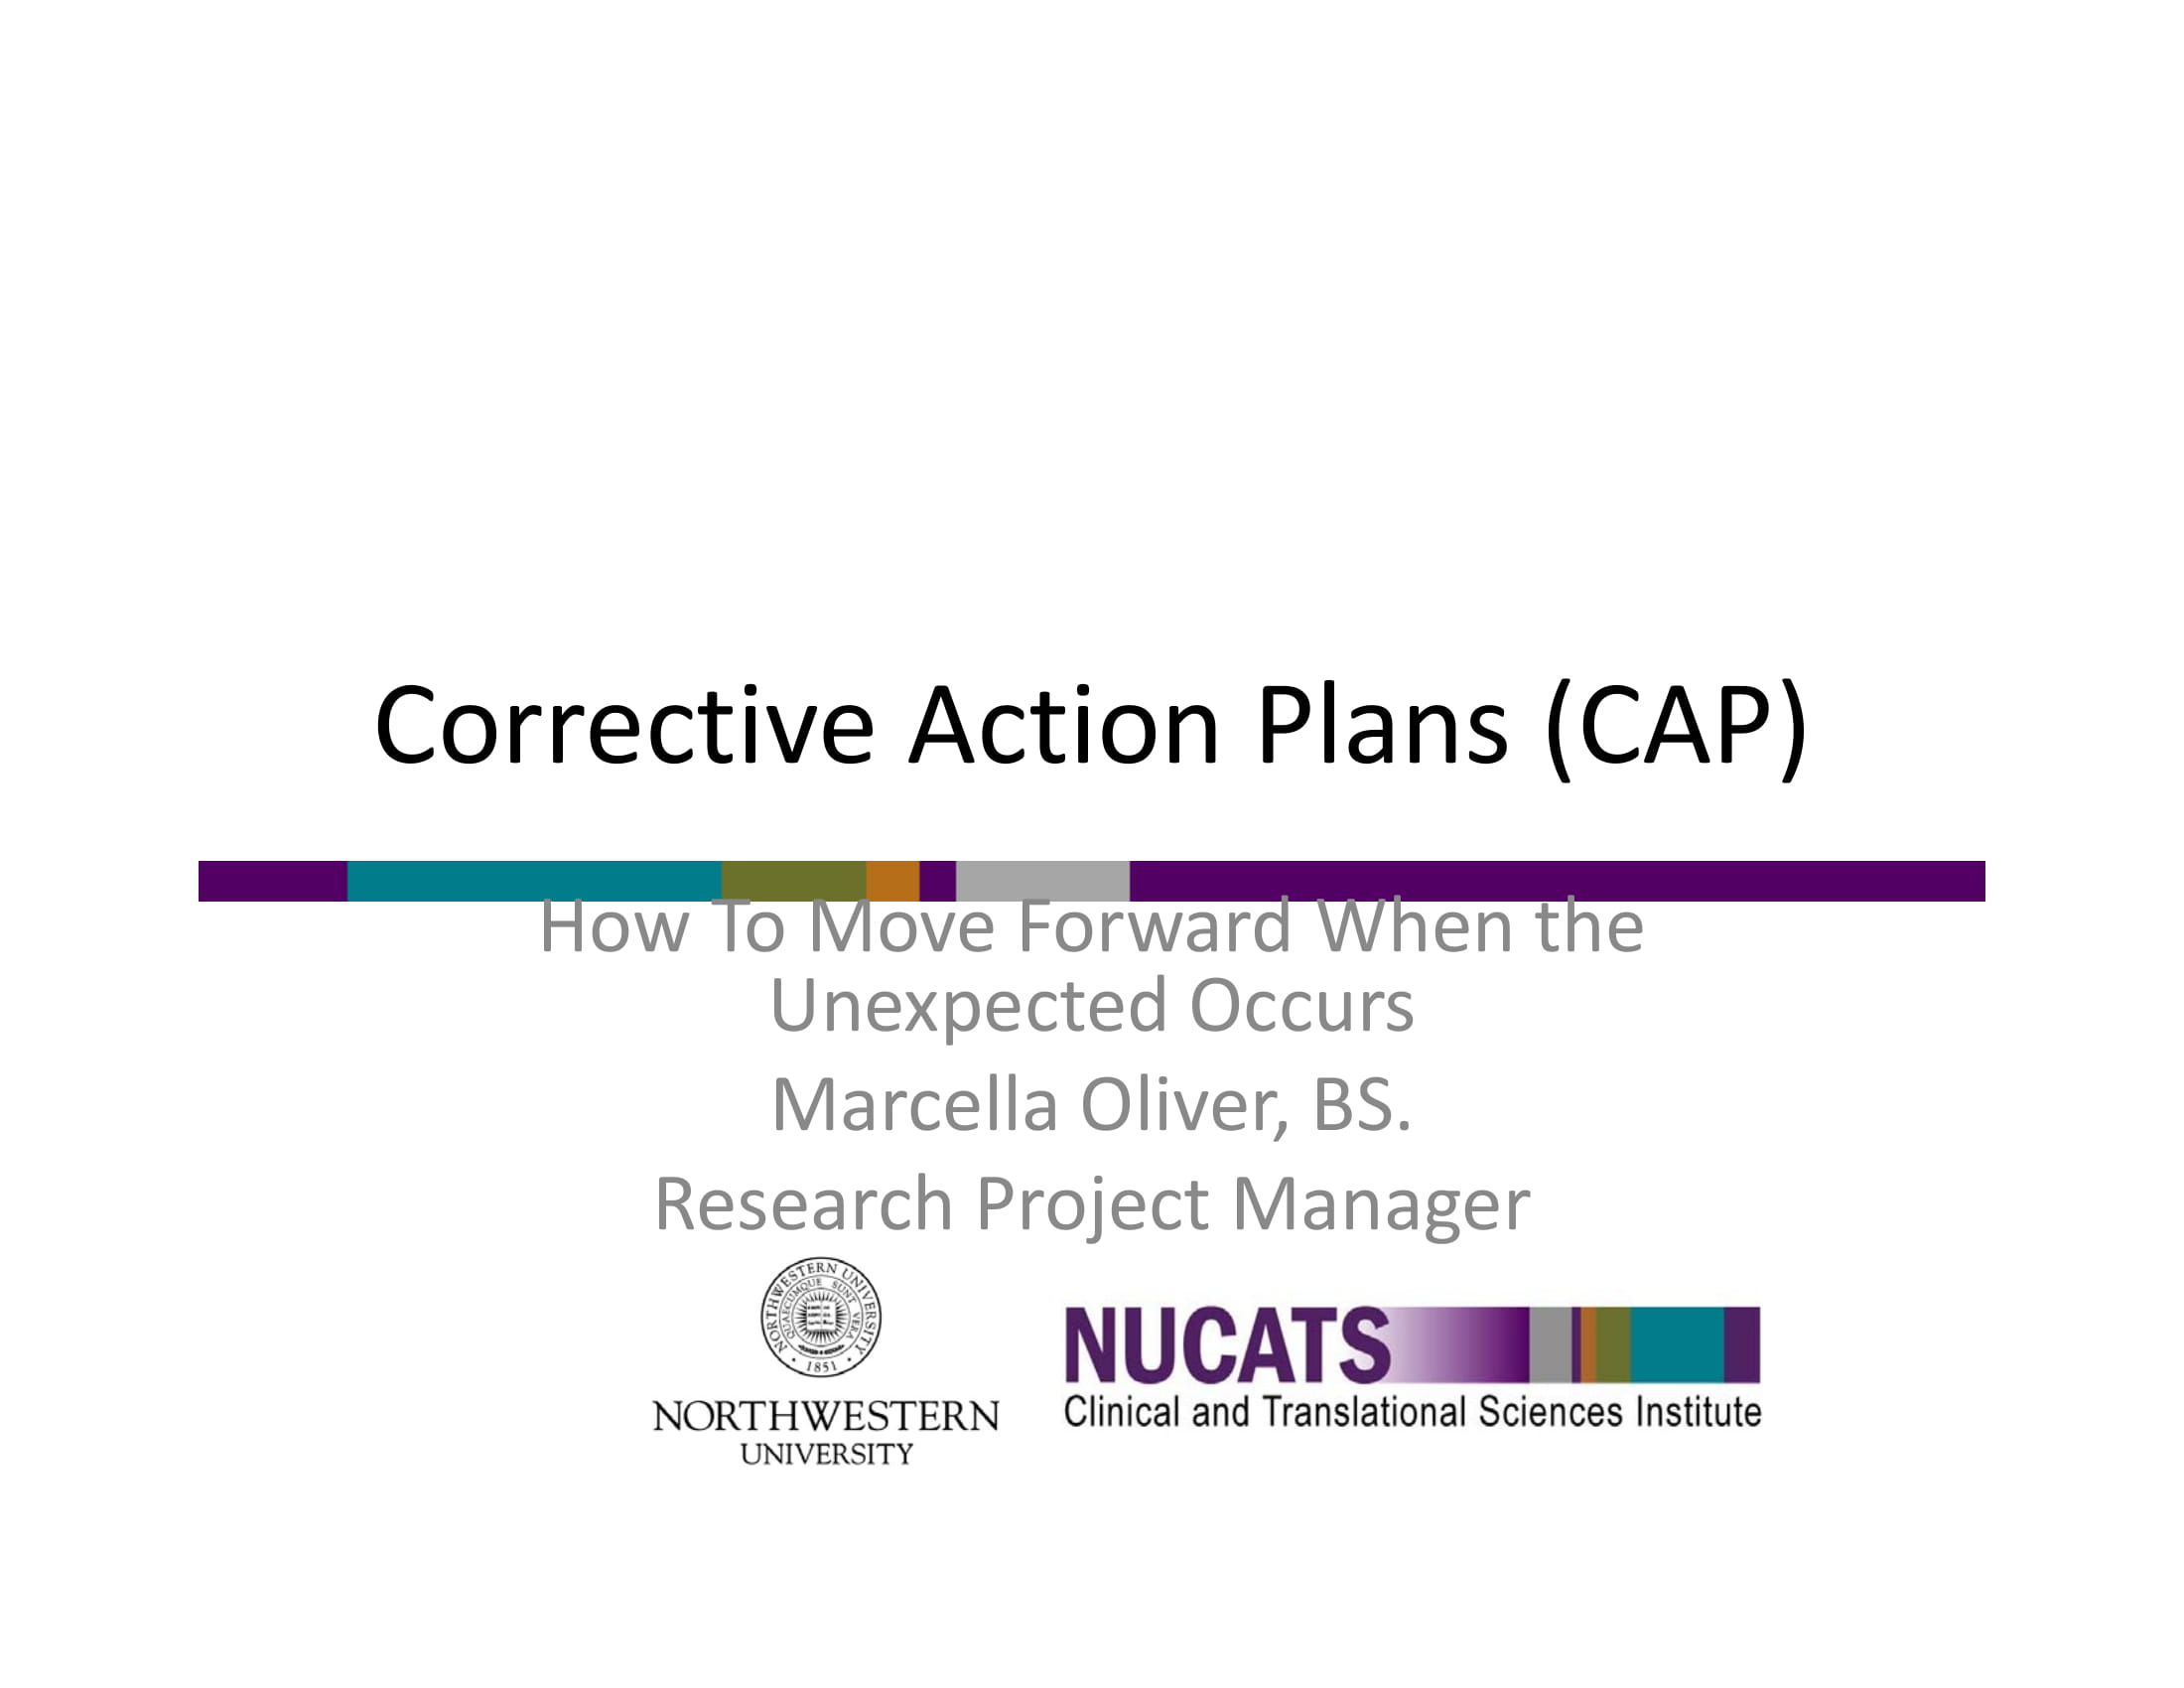 corrective action plan example 01